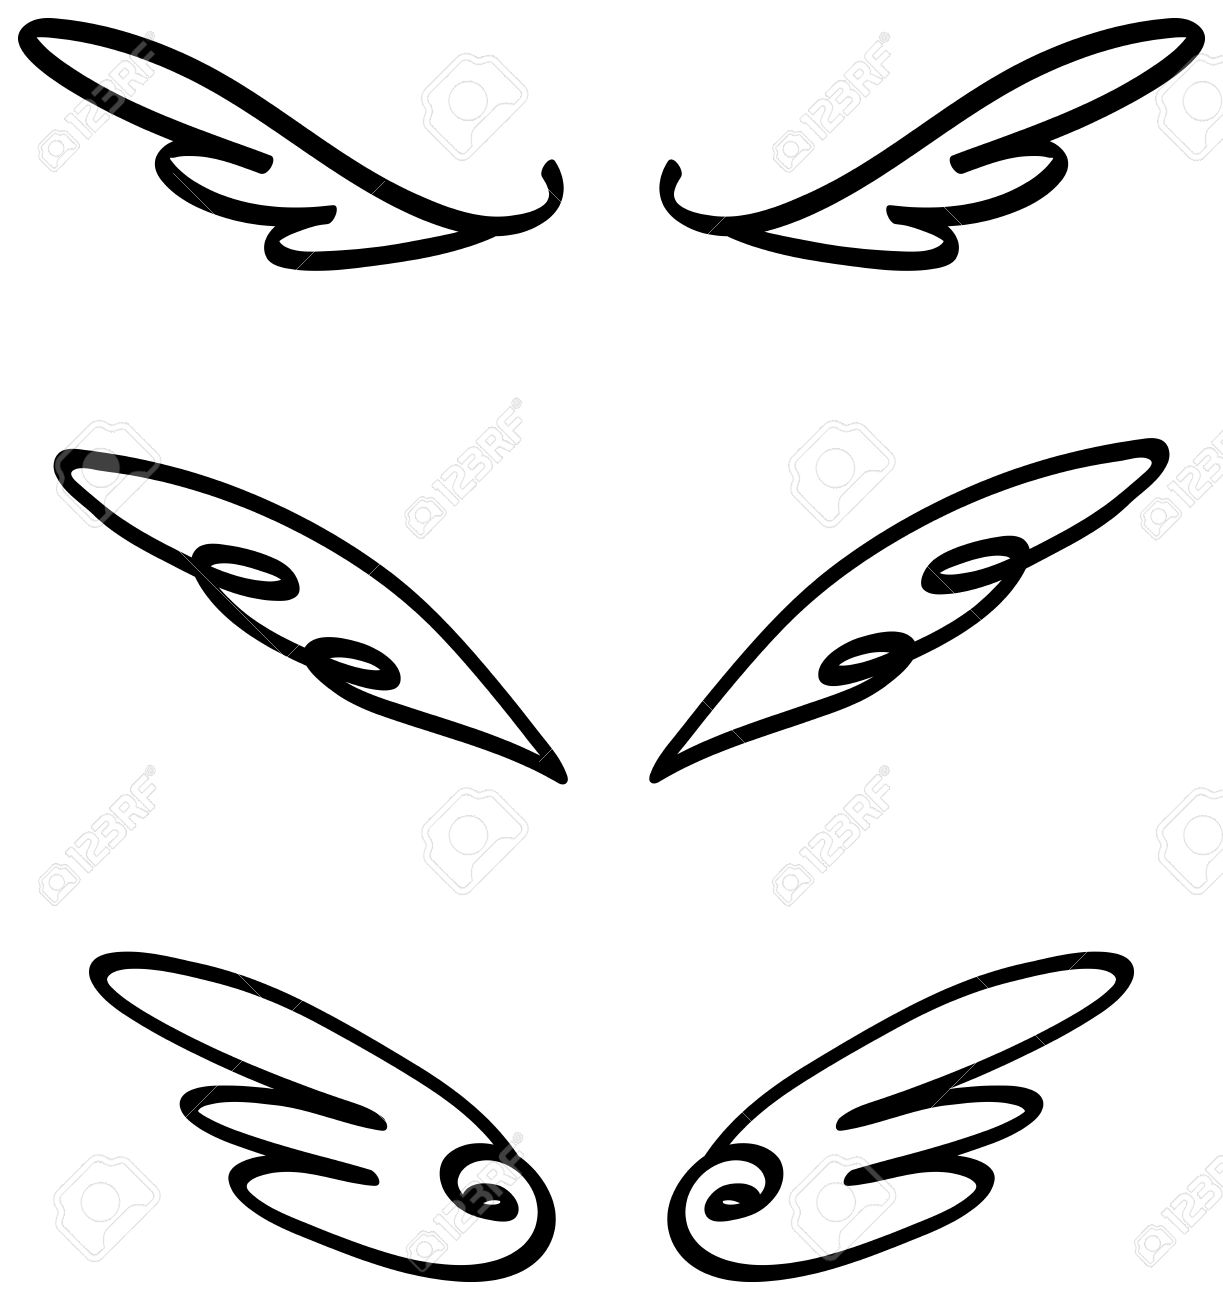 Cartoon Illustration Doodle Of Angel Or Fairy Wings Icon Sketch